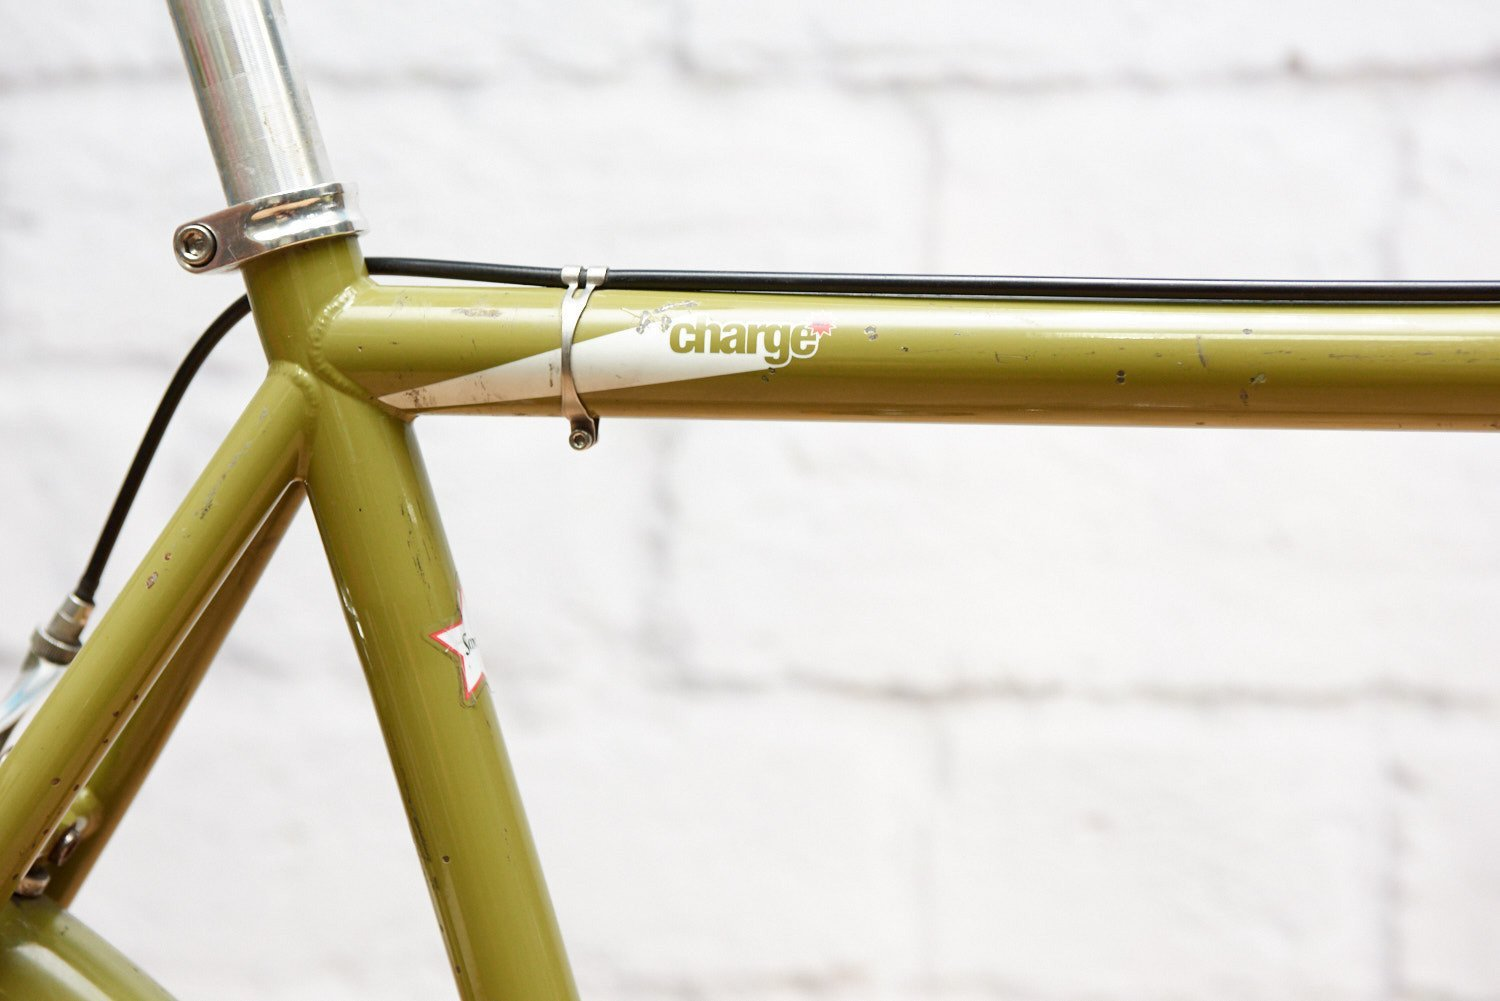 Charge Plug Grinder Single Speed Bike (58cm frame)